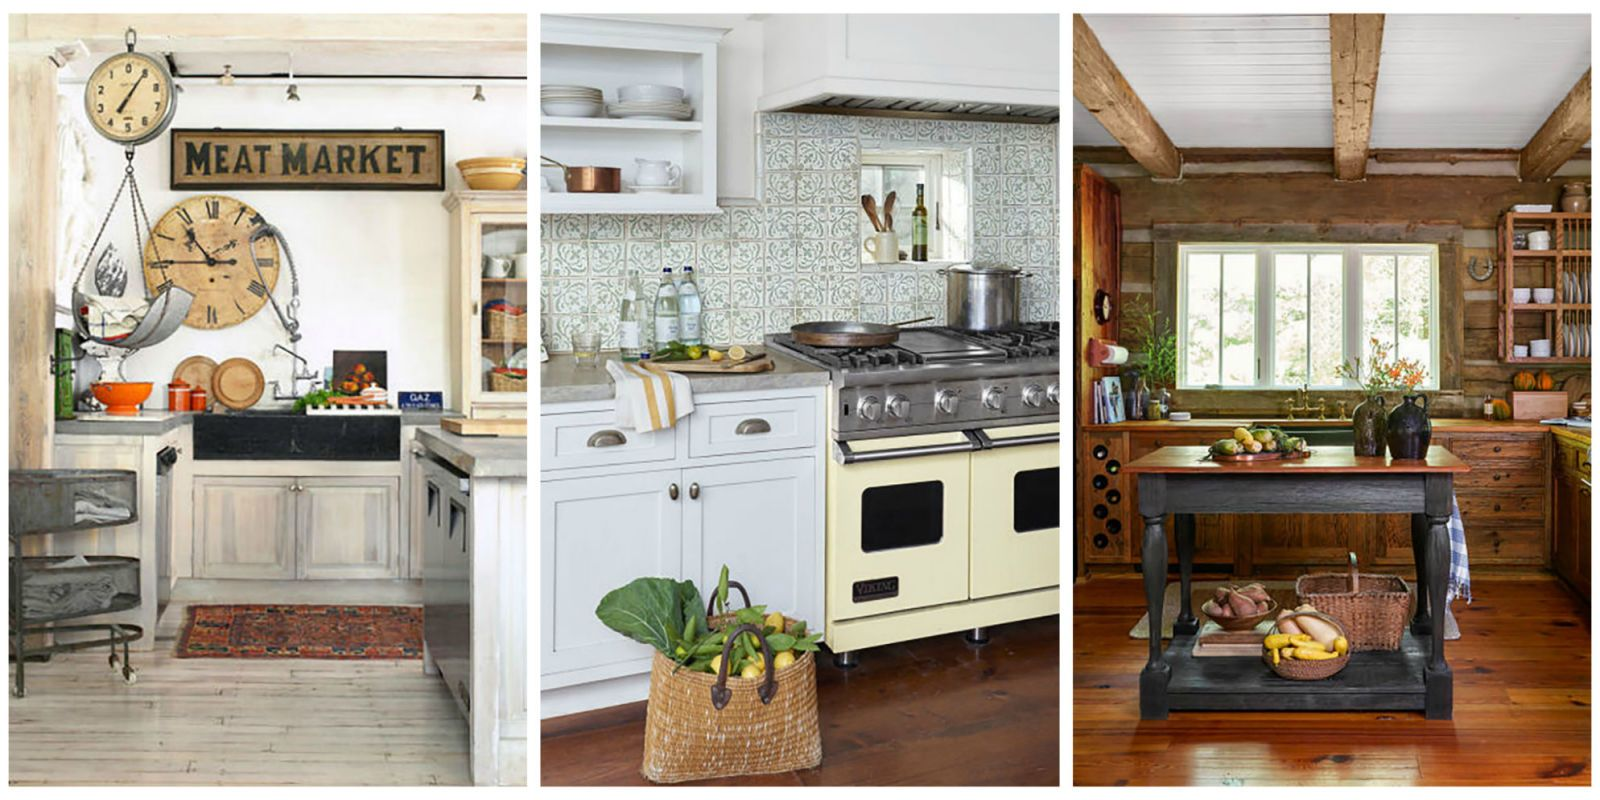 Ordinaire Find More Ways To Add Farmhouse Styleto Every Room Of The House; Plus,  Check Out Our Full Collection Of Style Inspiration For Country Homes.